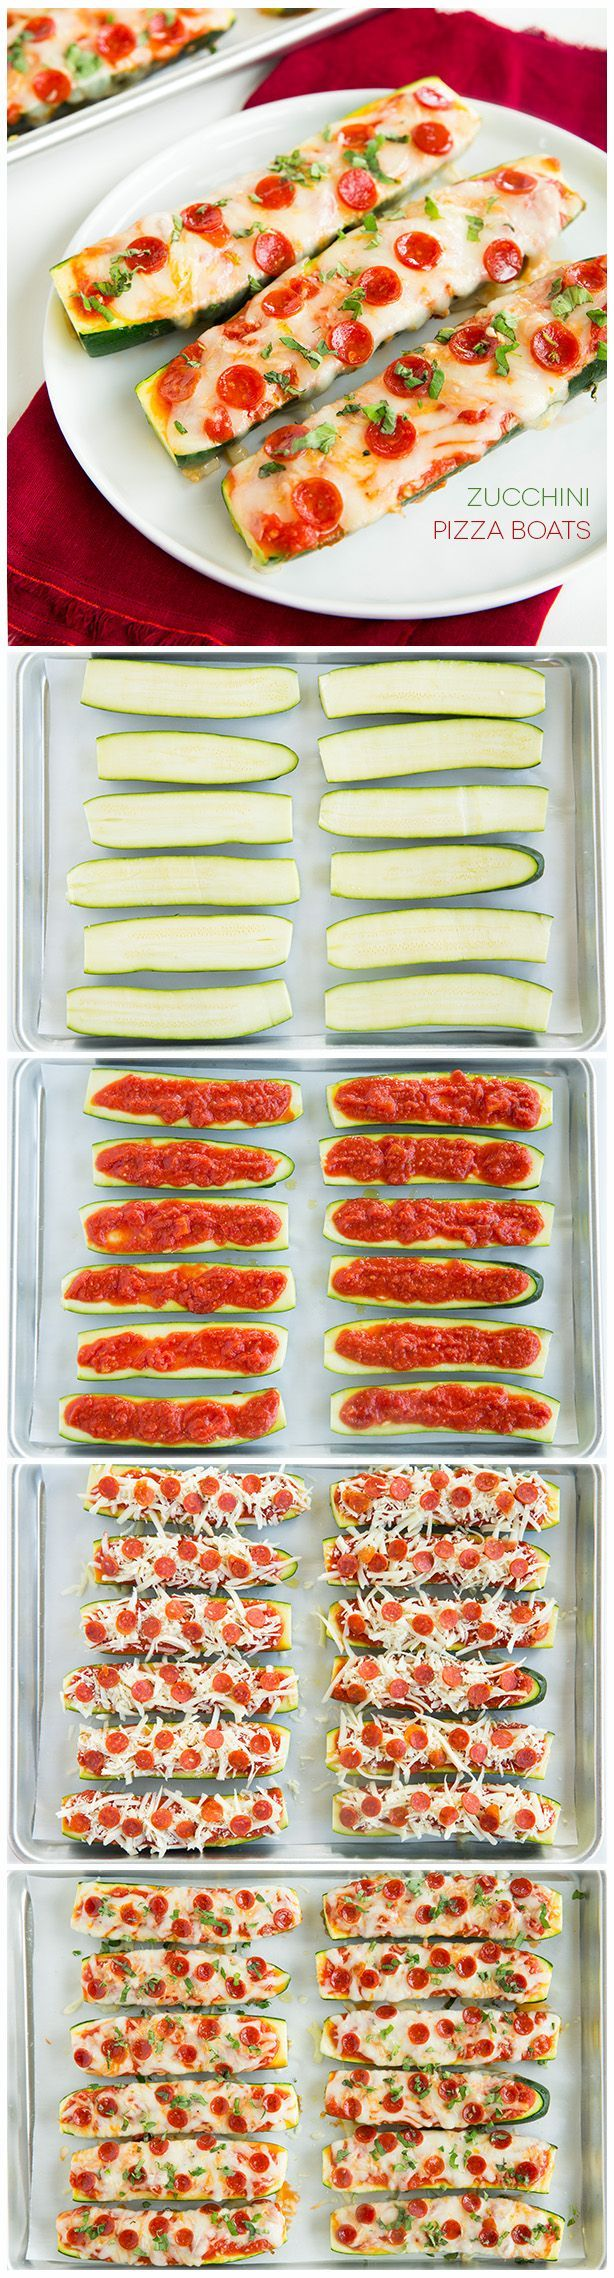 Love this creative way to enjoy the flavors of pizza but with a healthy twist! Zucchini Pizza Boats - only take about 10 minutes prep!